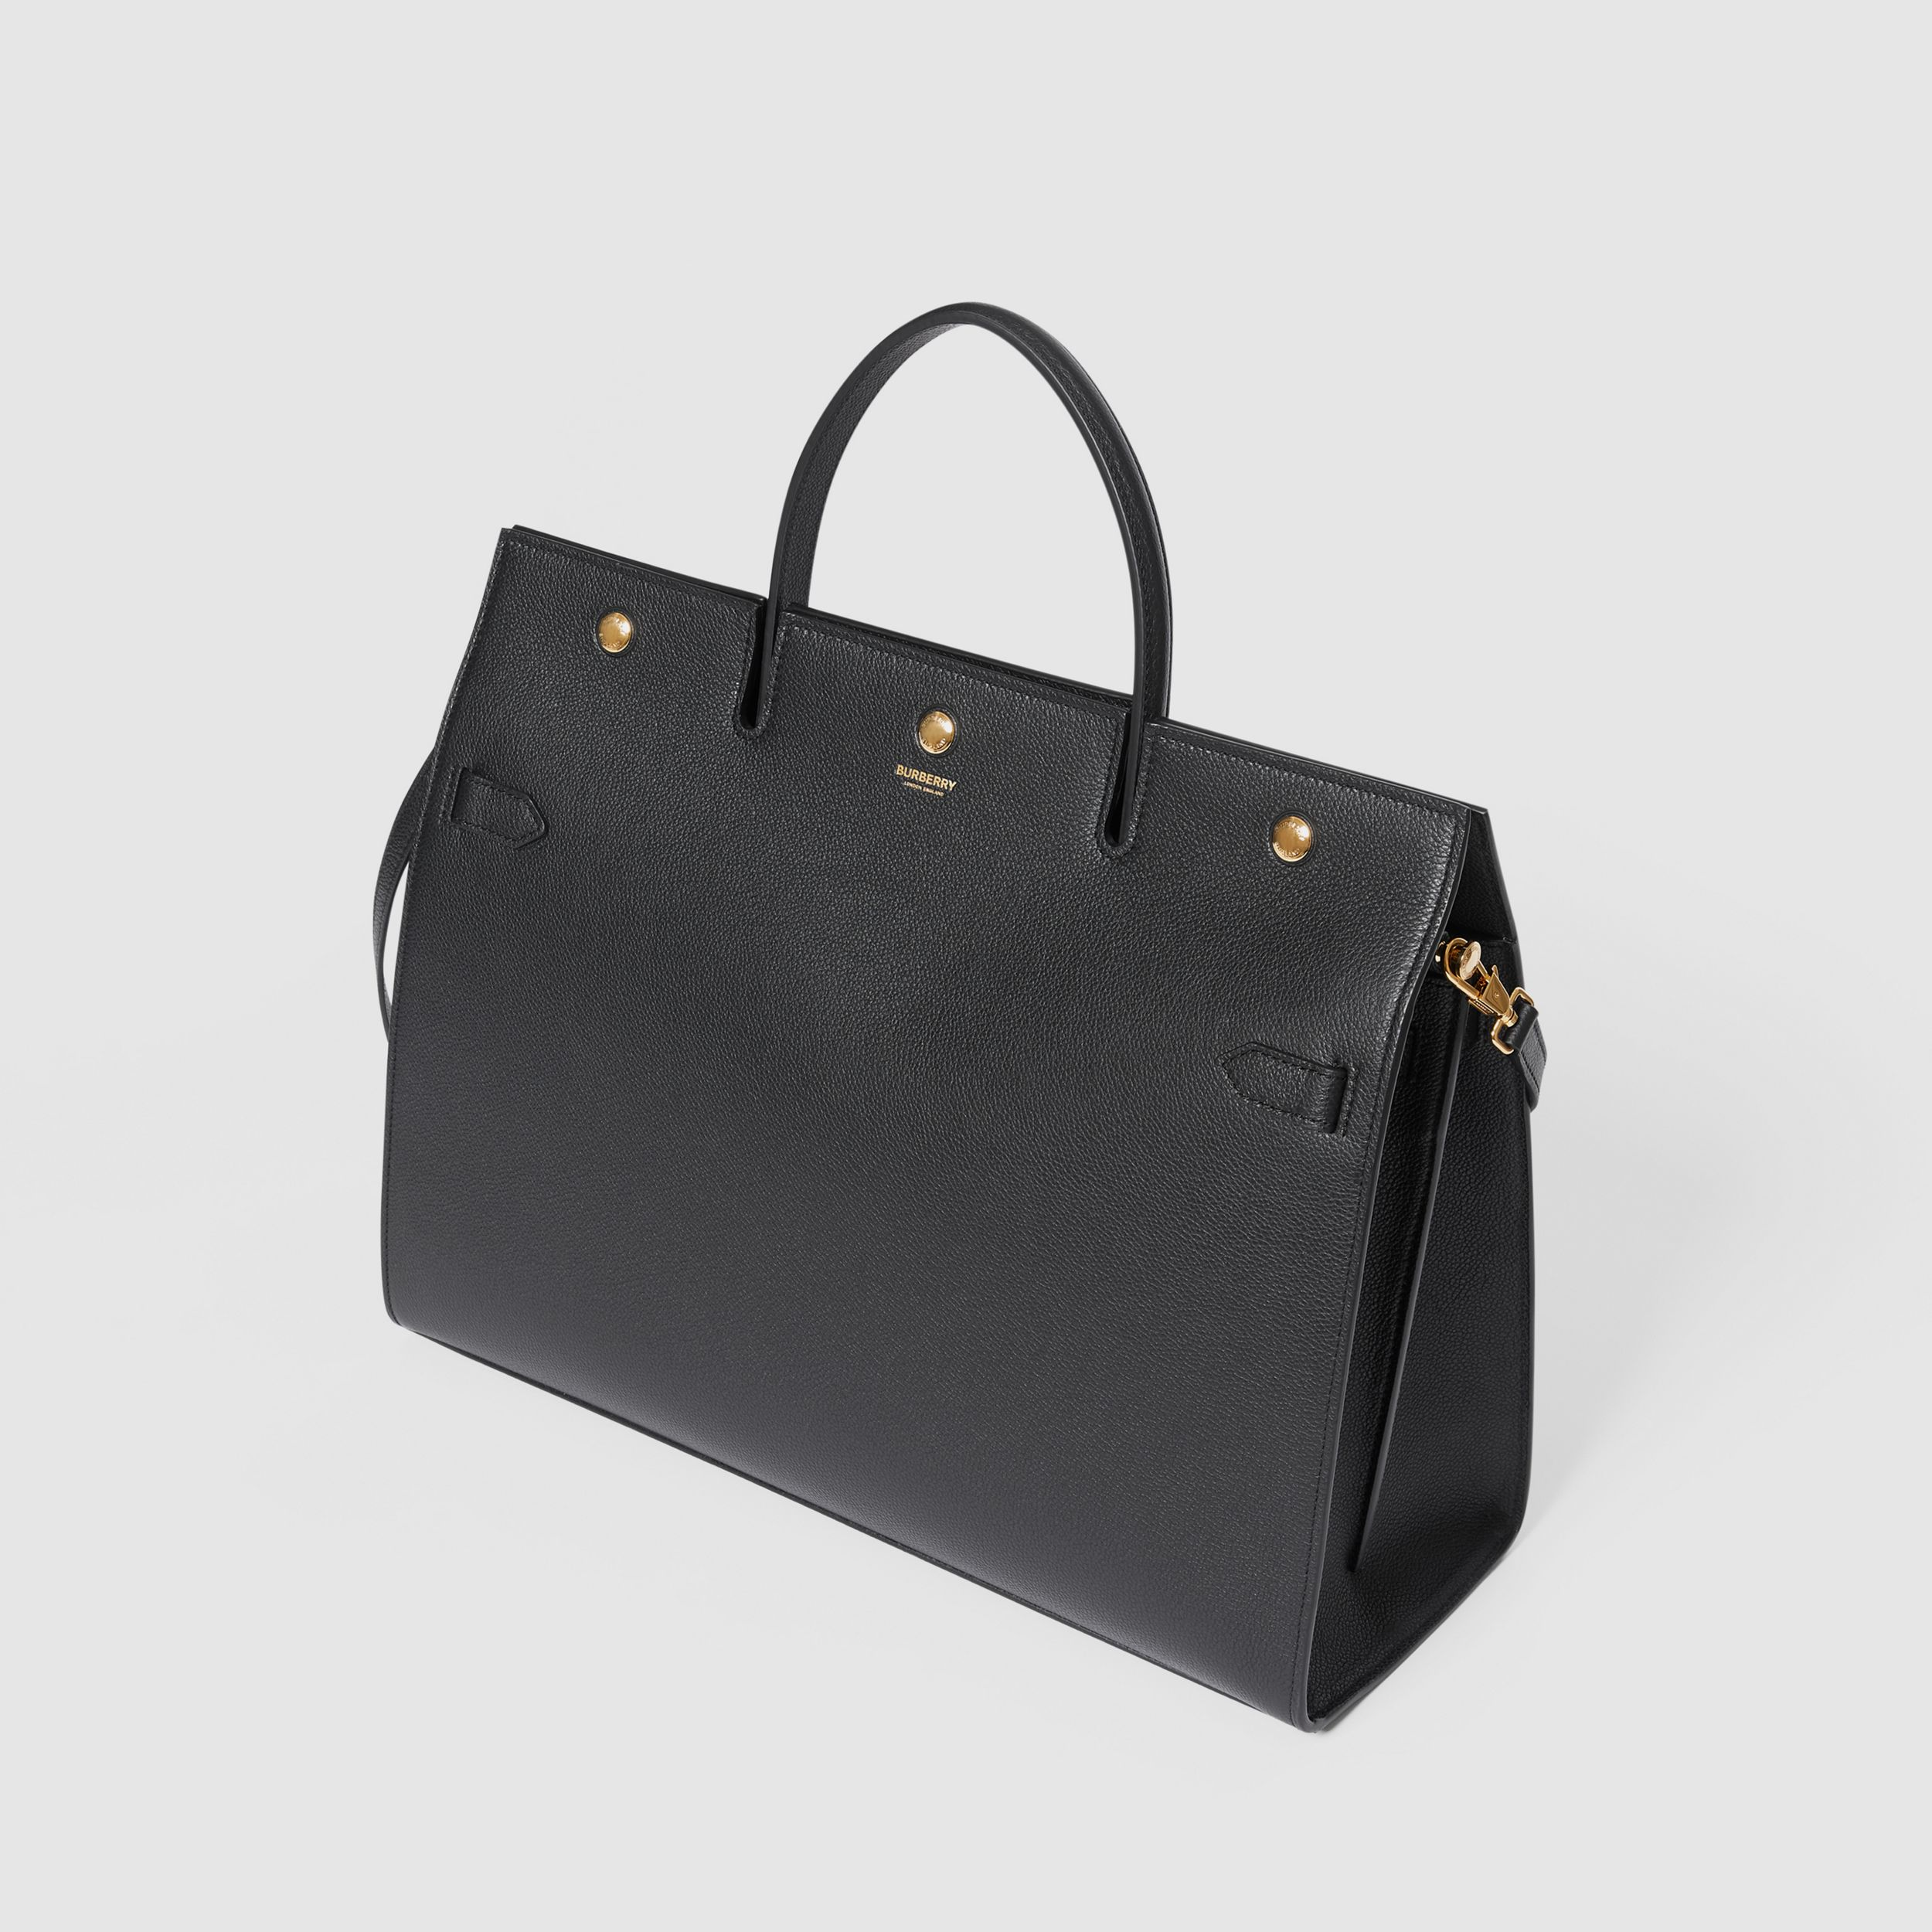 Large Leather Title Bag in Black - Women | Burberry Singapore - 4